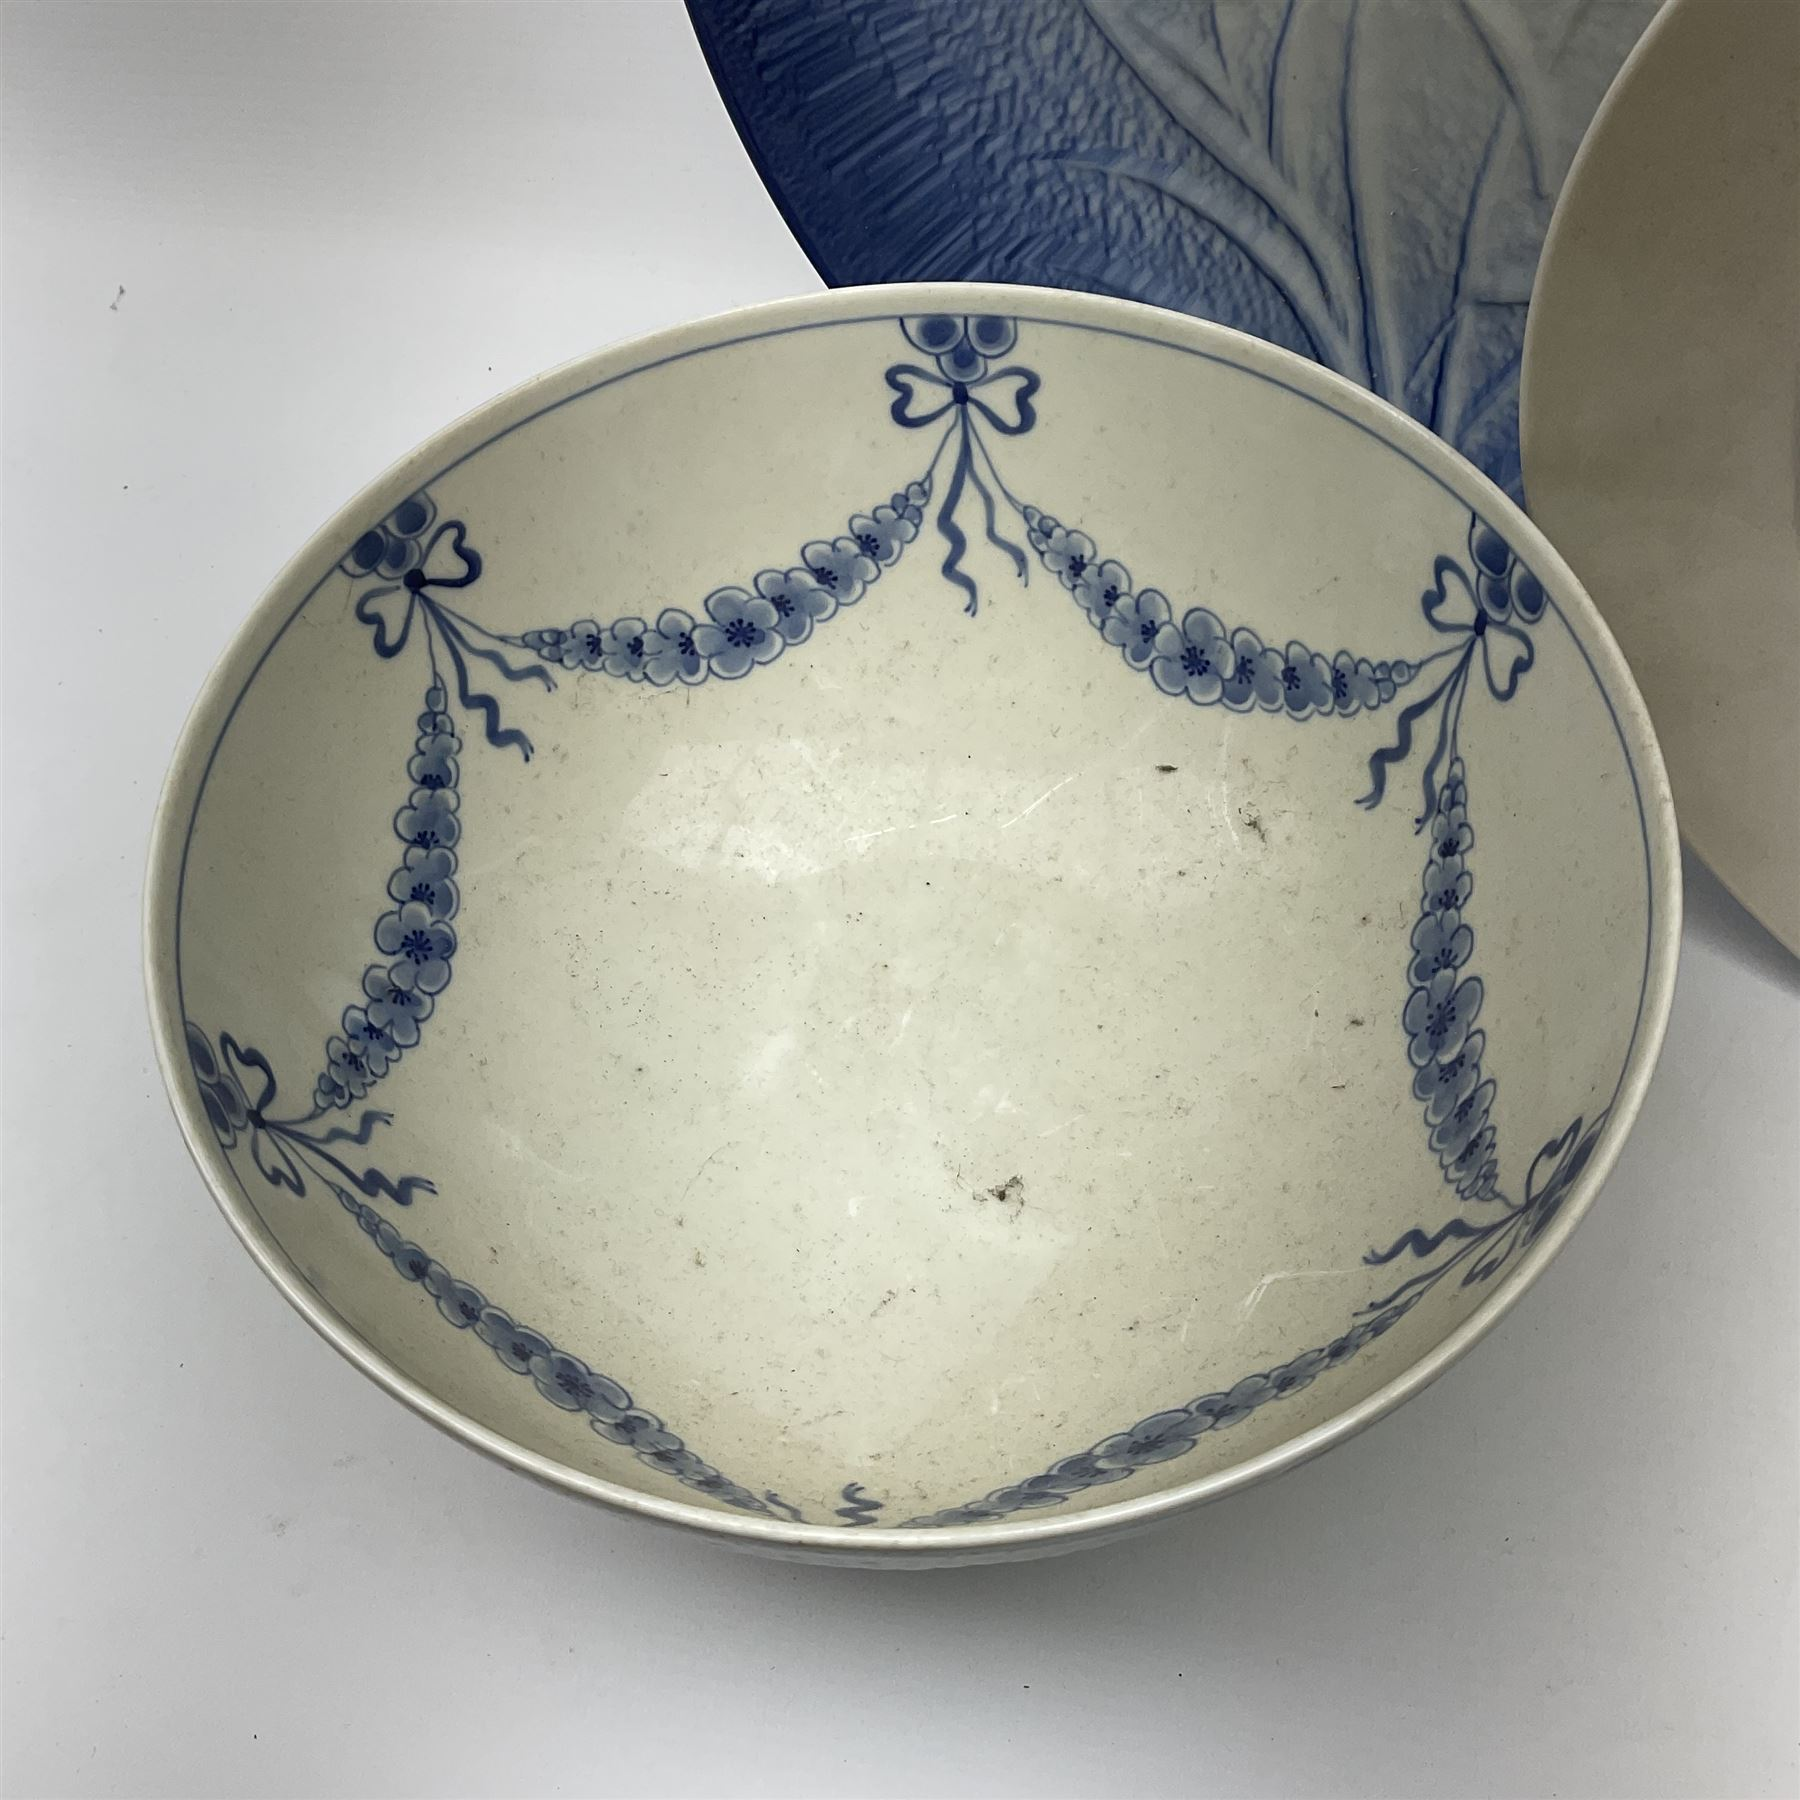 A Bing and Grondahl dish with moulded rim and blue swag decoration to the interior - Image 2 of 6